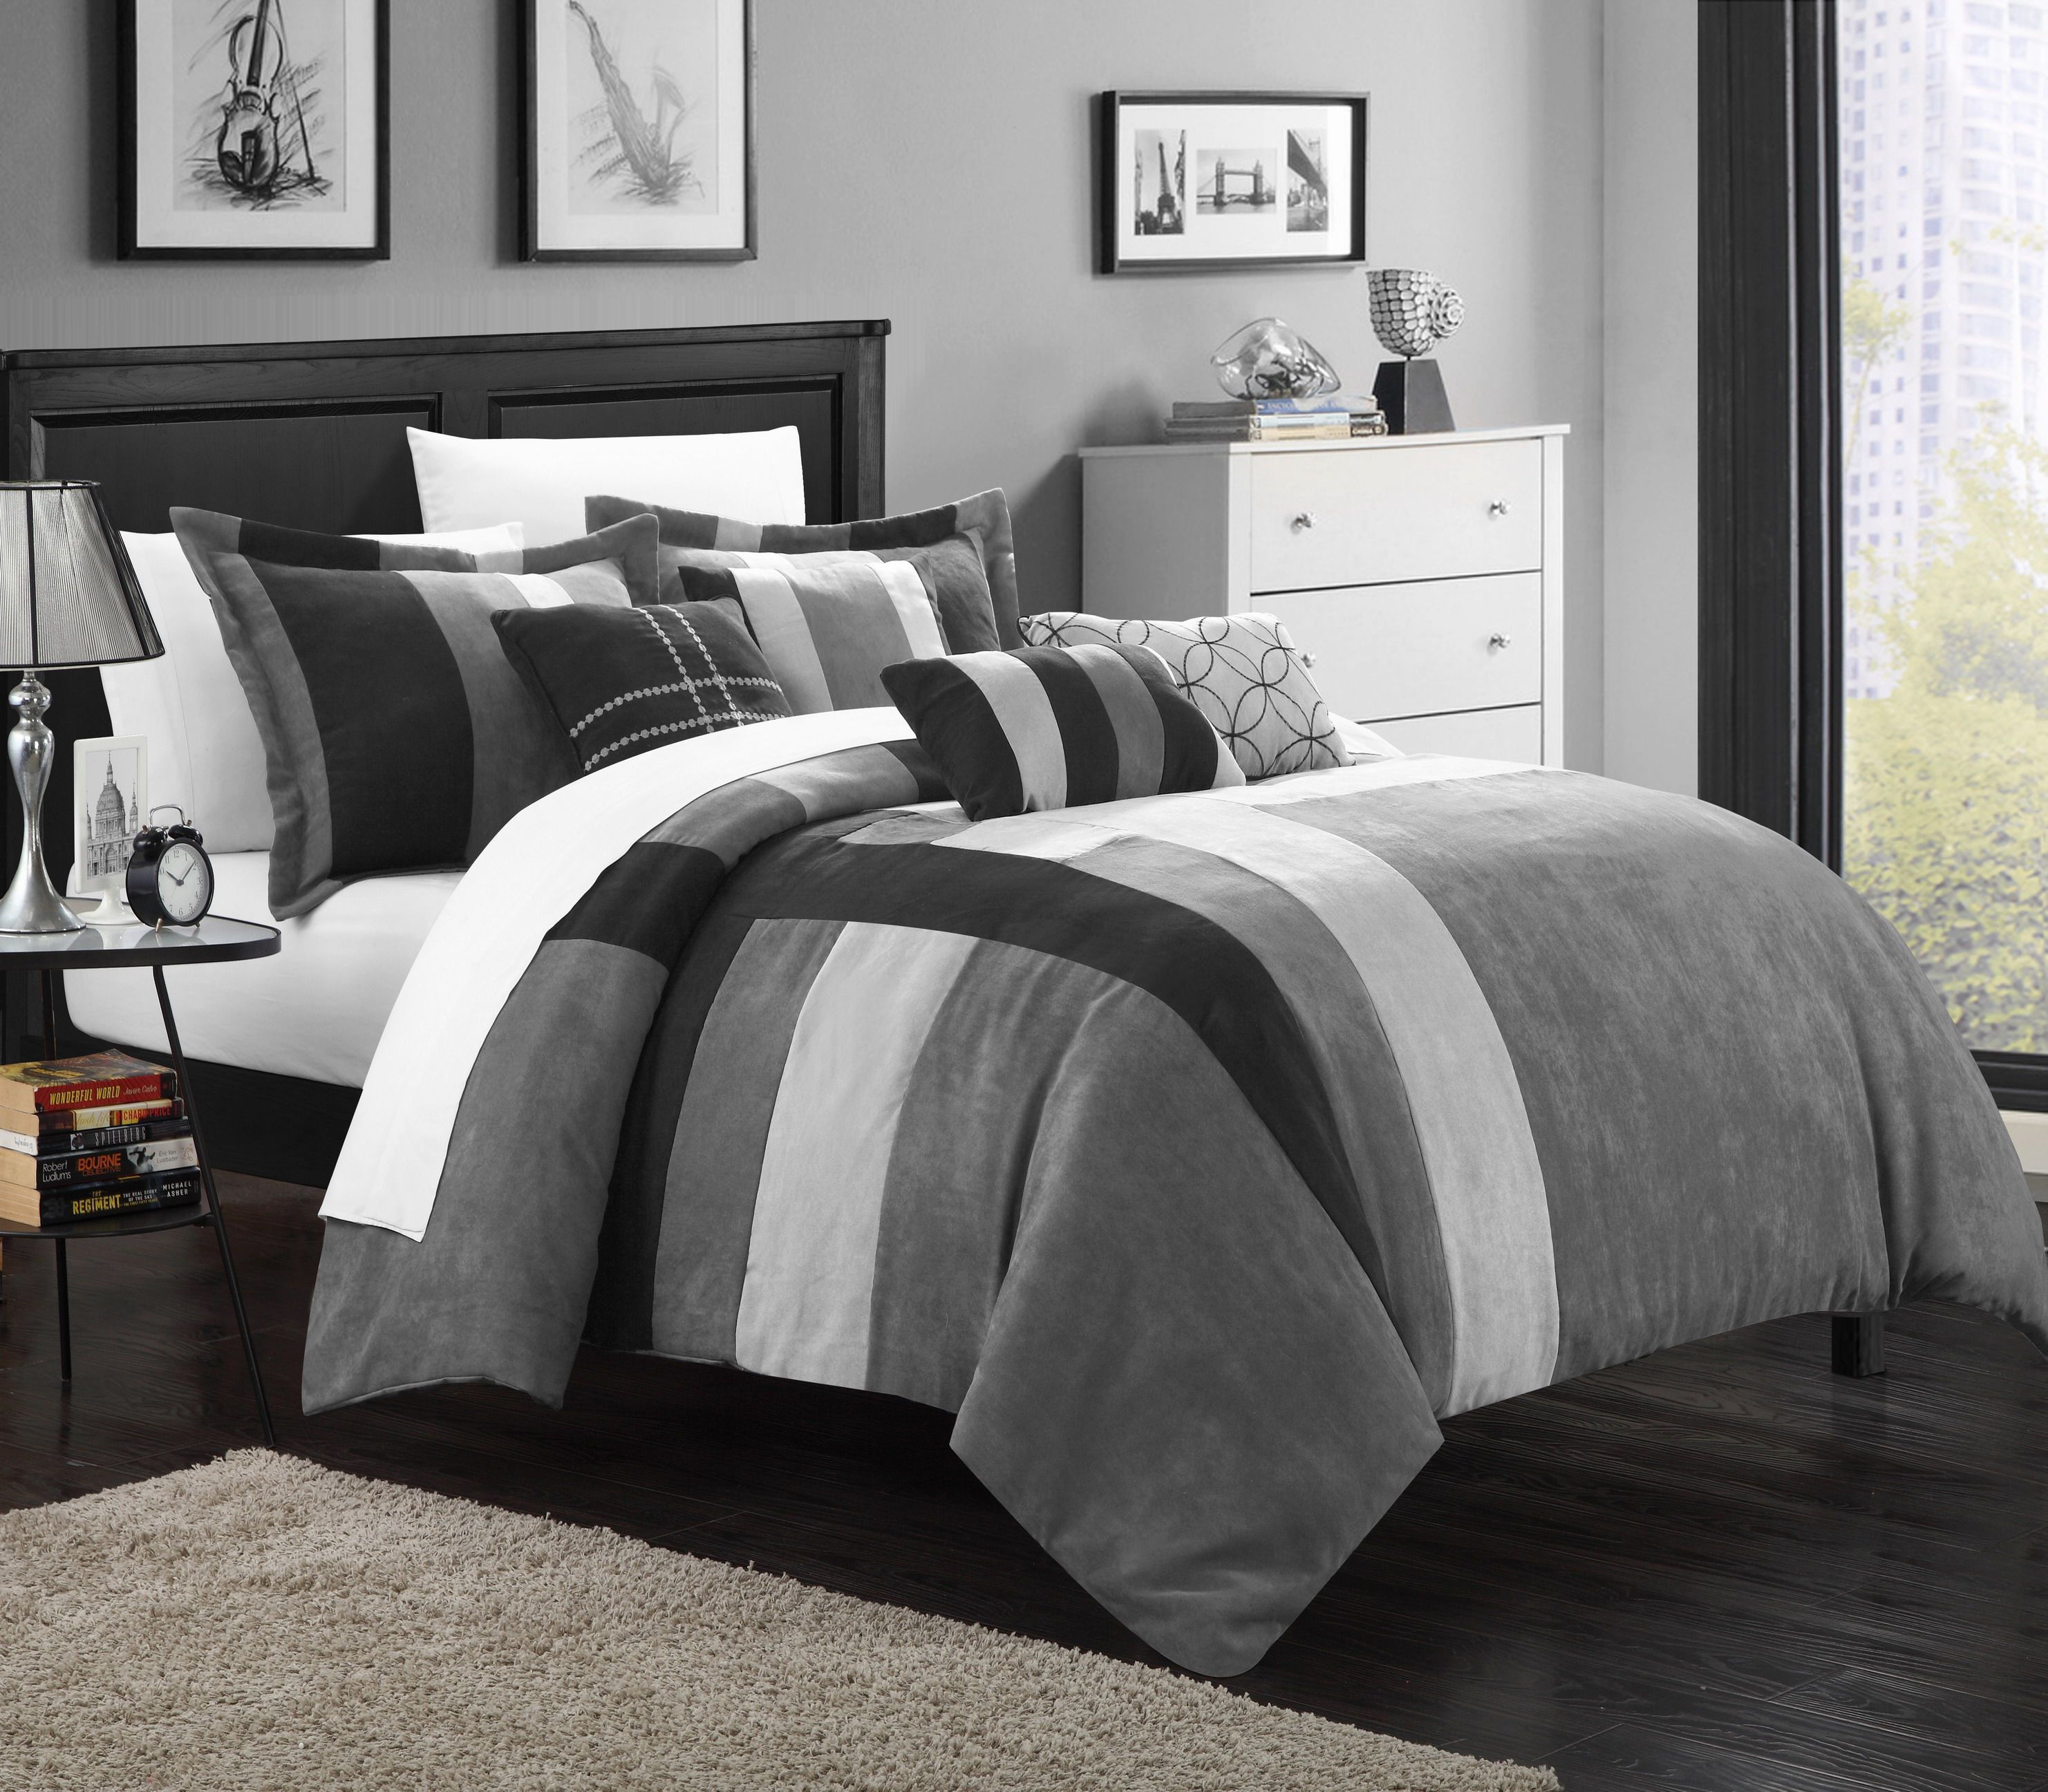 suede sleep also bed plus on astonishing grey accent bedroom and for comforters micro frame comfortable combined lace patterned cushion gray comforter satin black sham dark with set iron